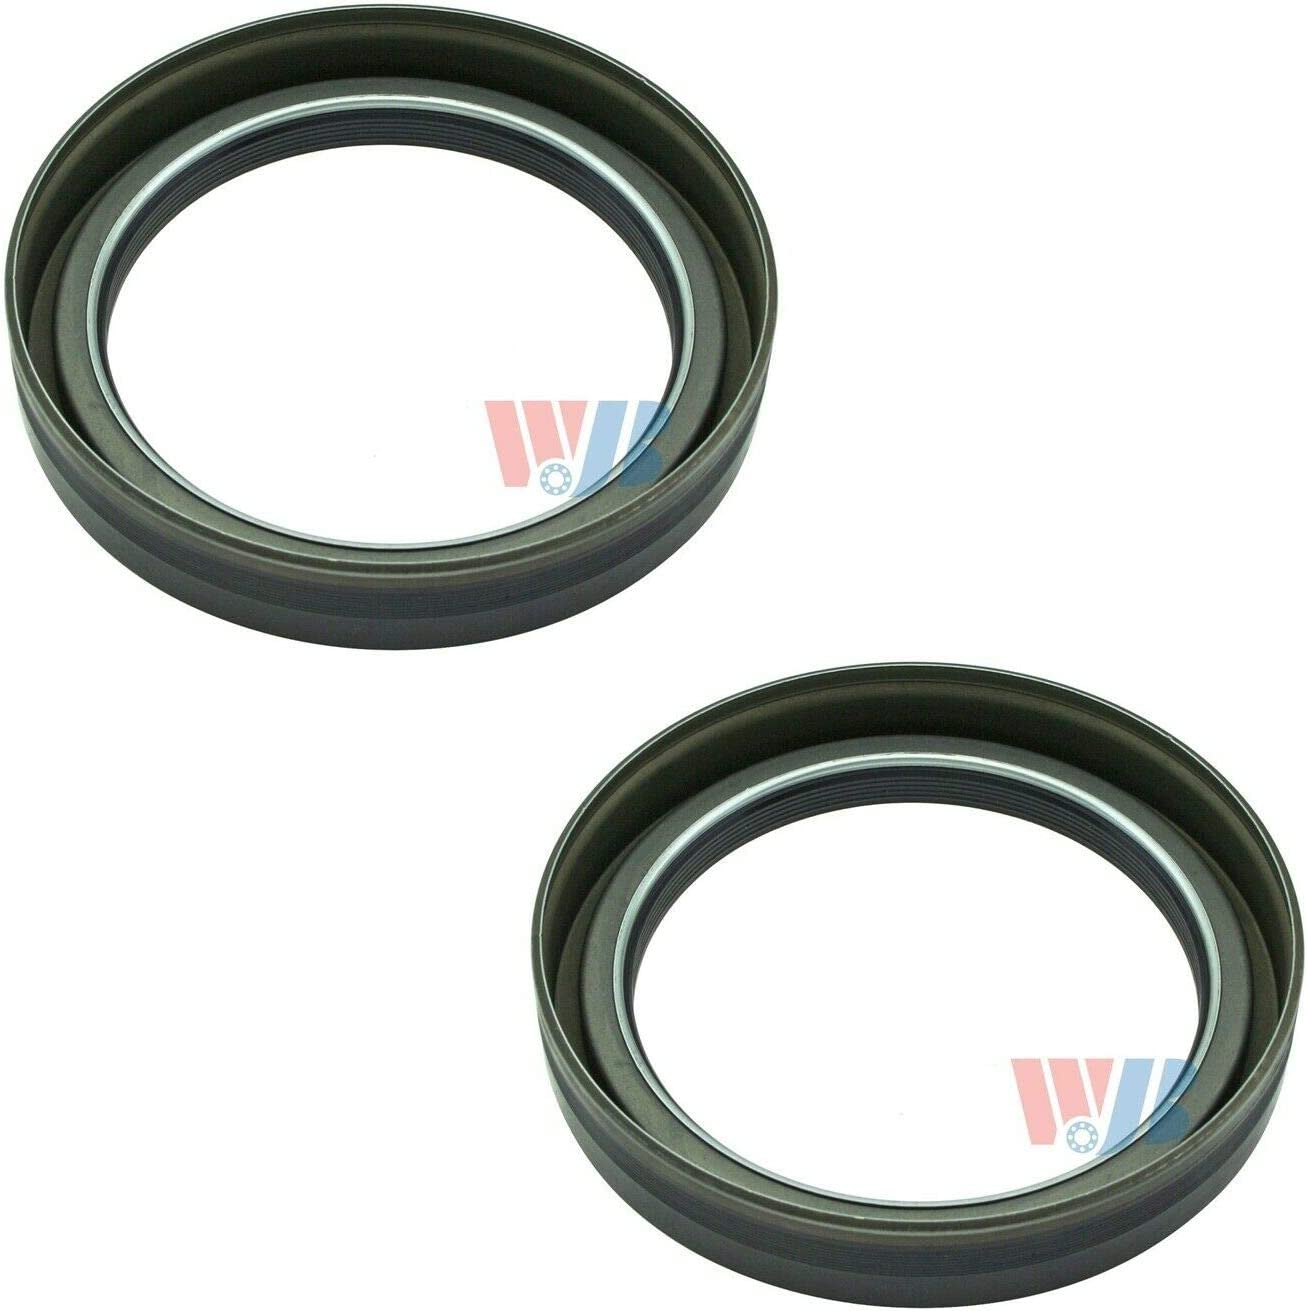 New product Pair Set of 2 Rear Inner WJB Kit Ford Dallas Mall Seals Wheel for Chevrolet